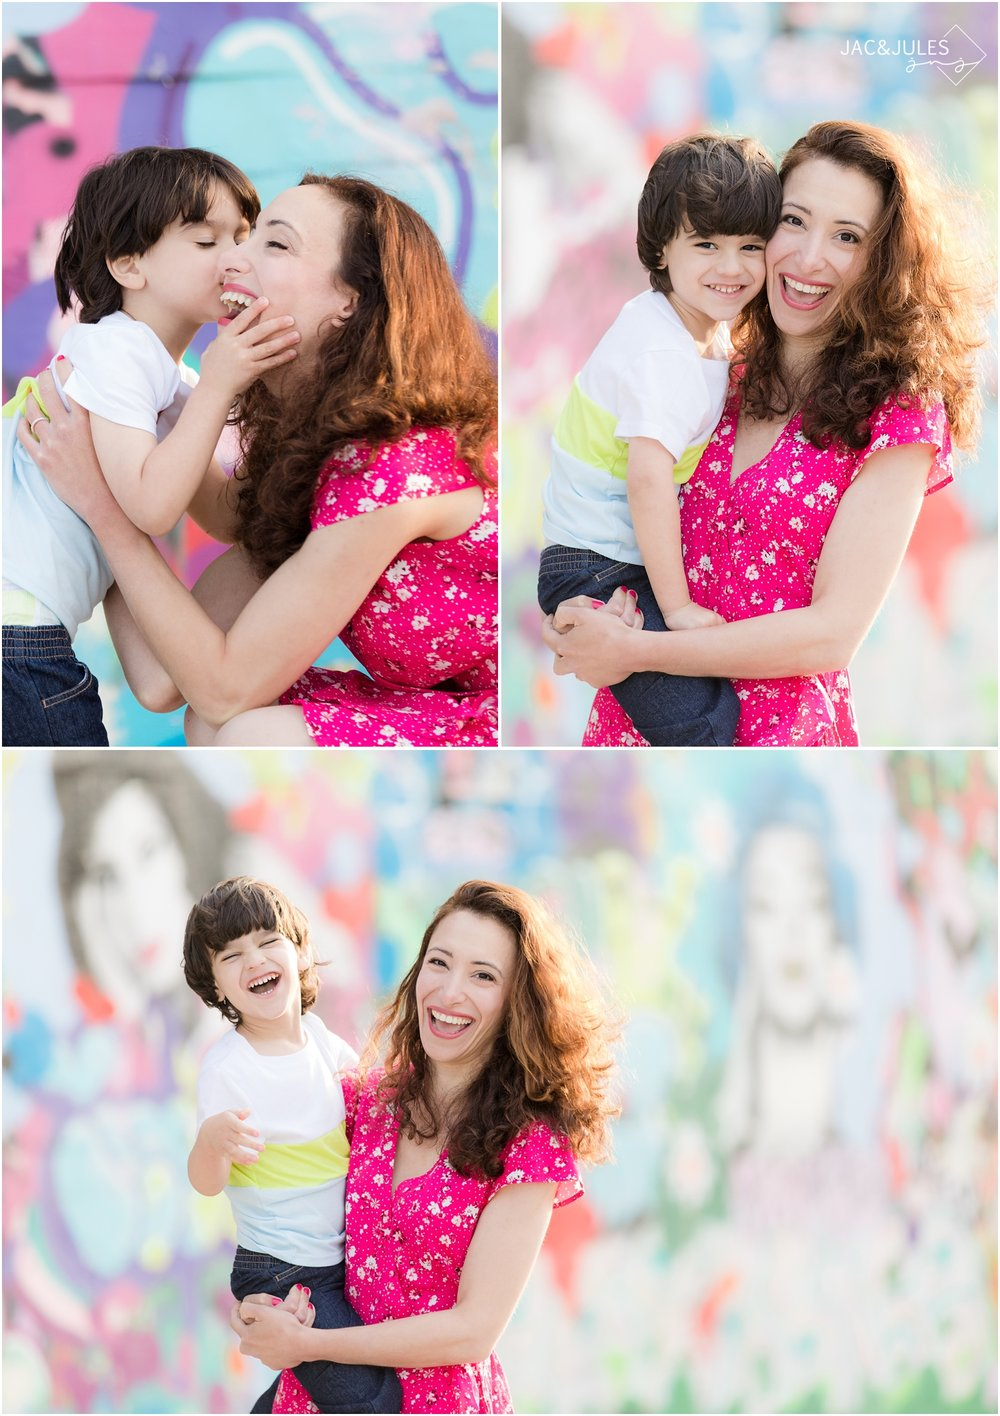 Happy, colorful and fun photos of mom and son in Asbury Park, NJ.